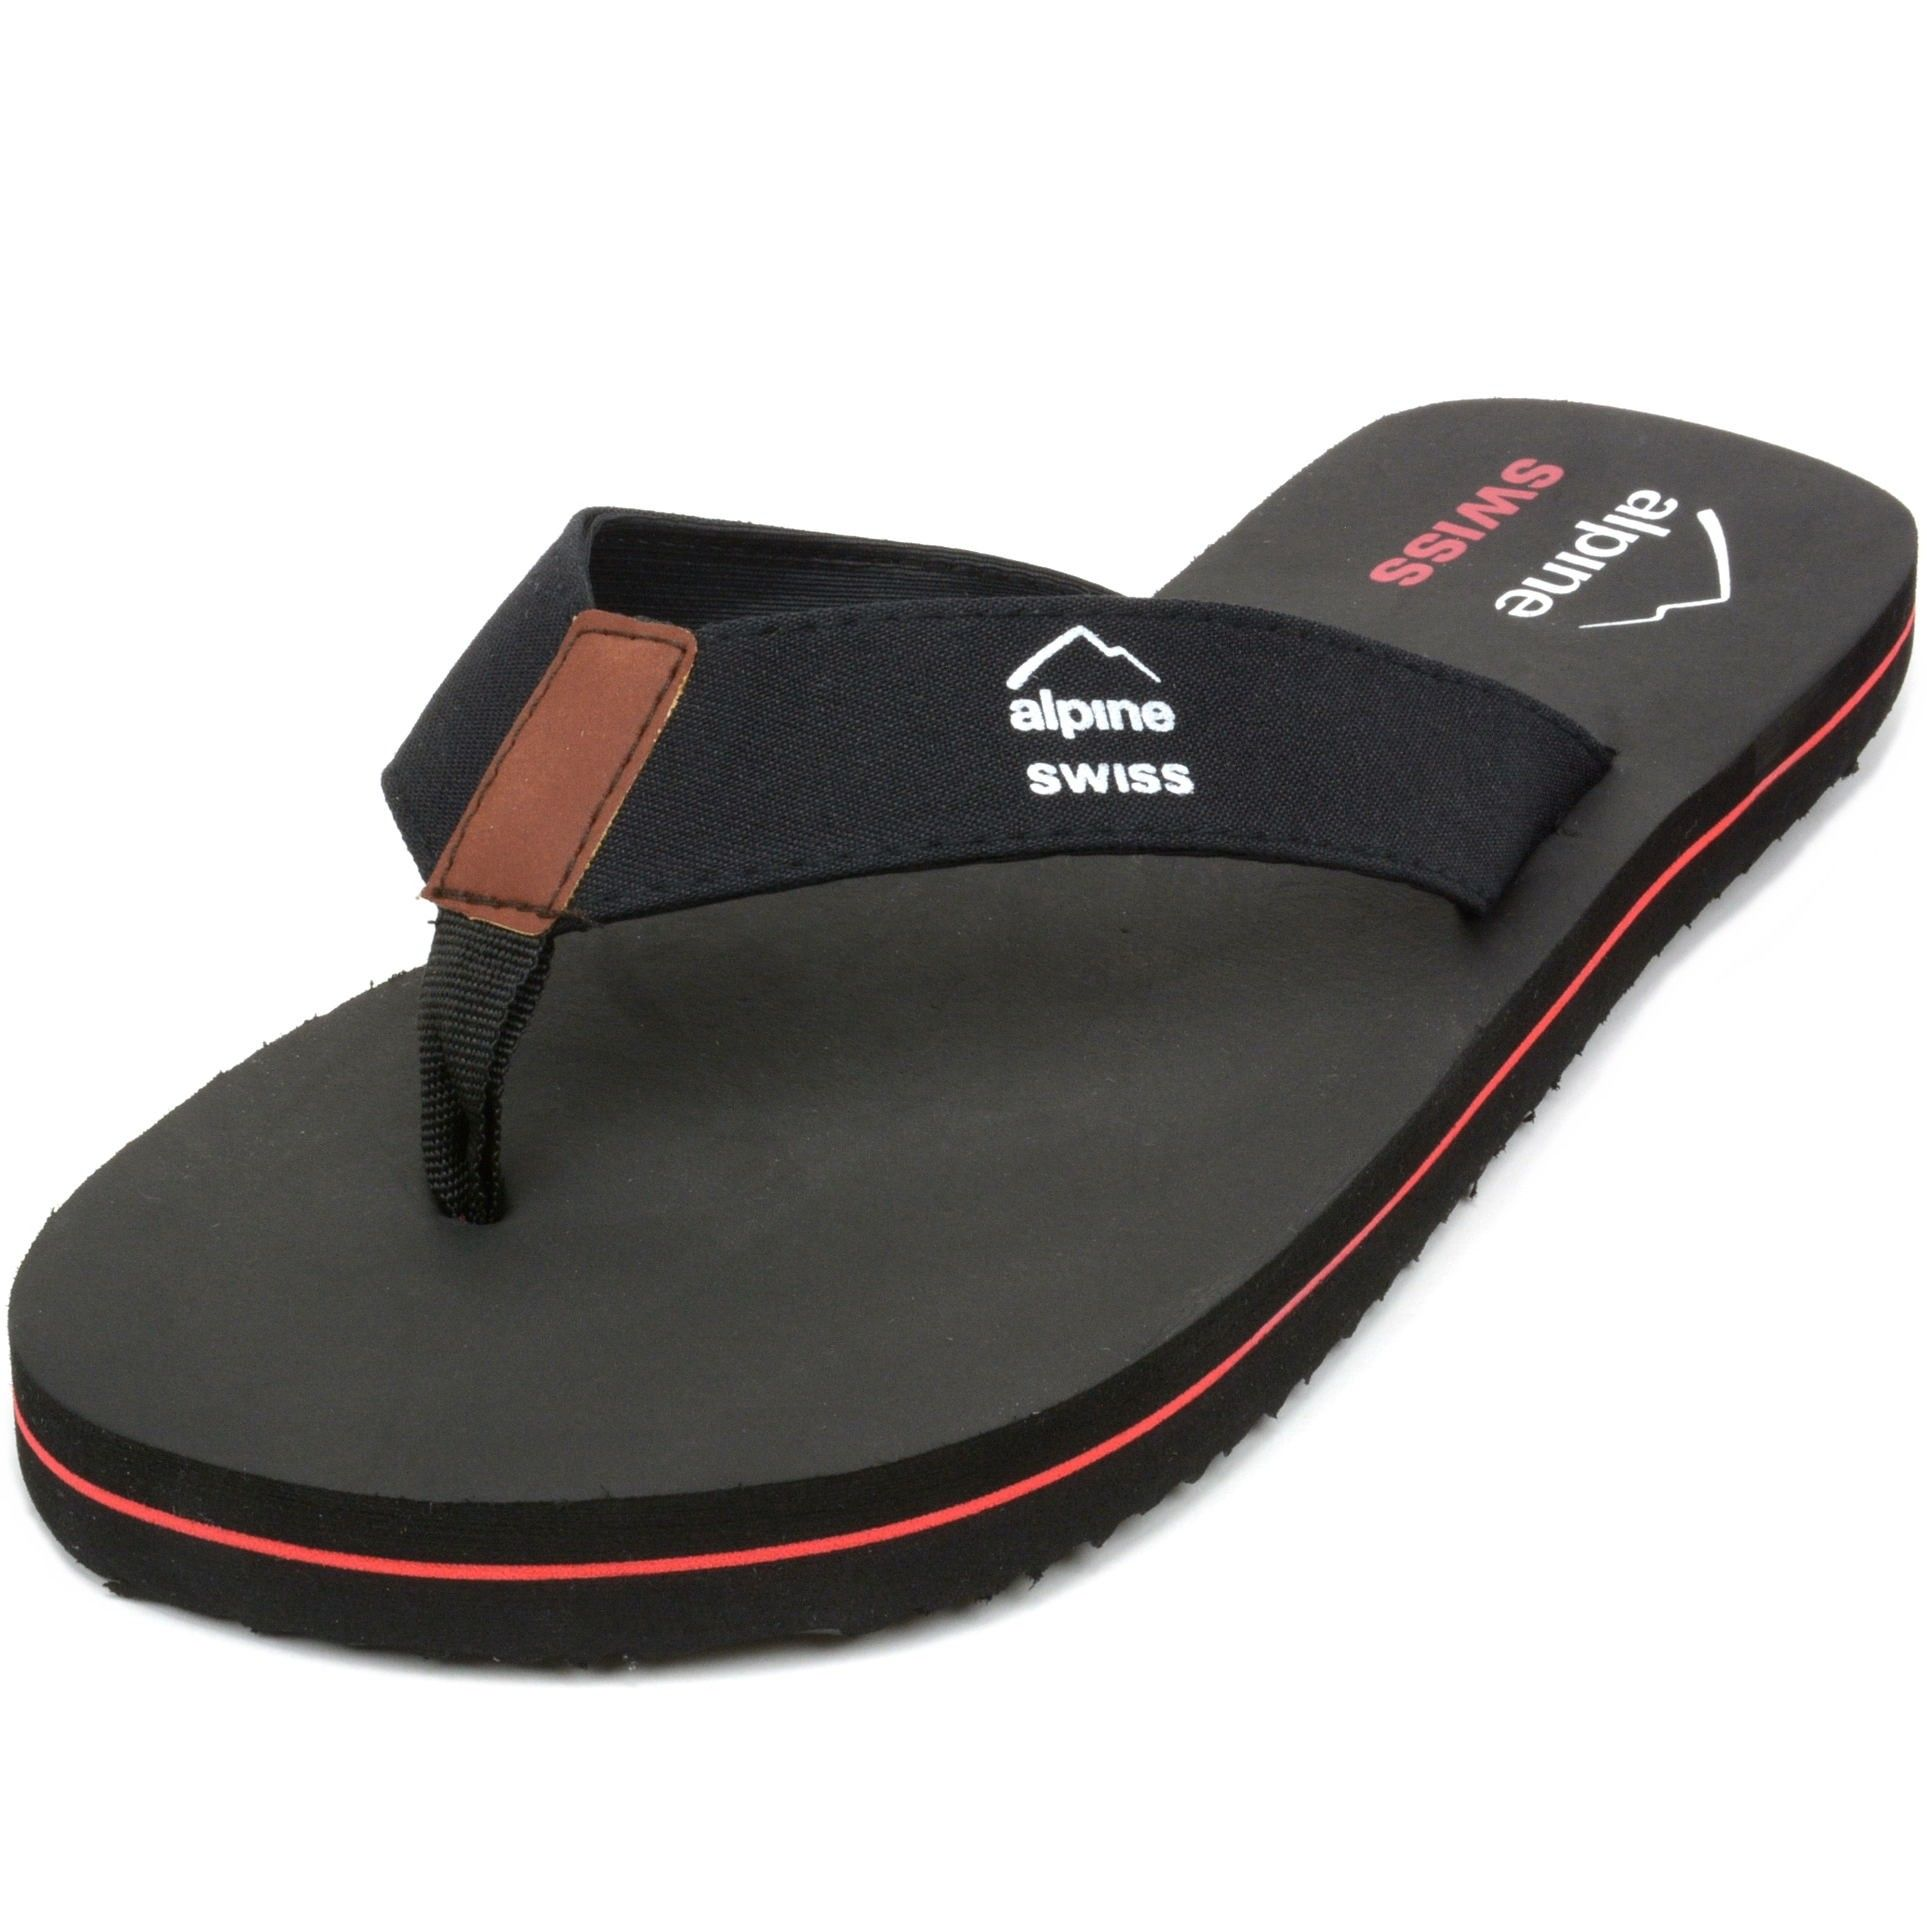 69b08a23a882d4 Alpine Swiss Men s Flip Flops Beach Sandals Lightweight EVA Sole Comfort  Thongs